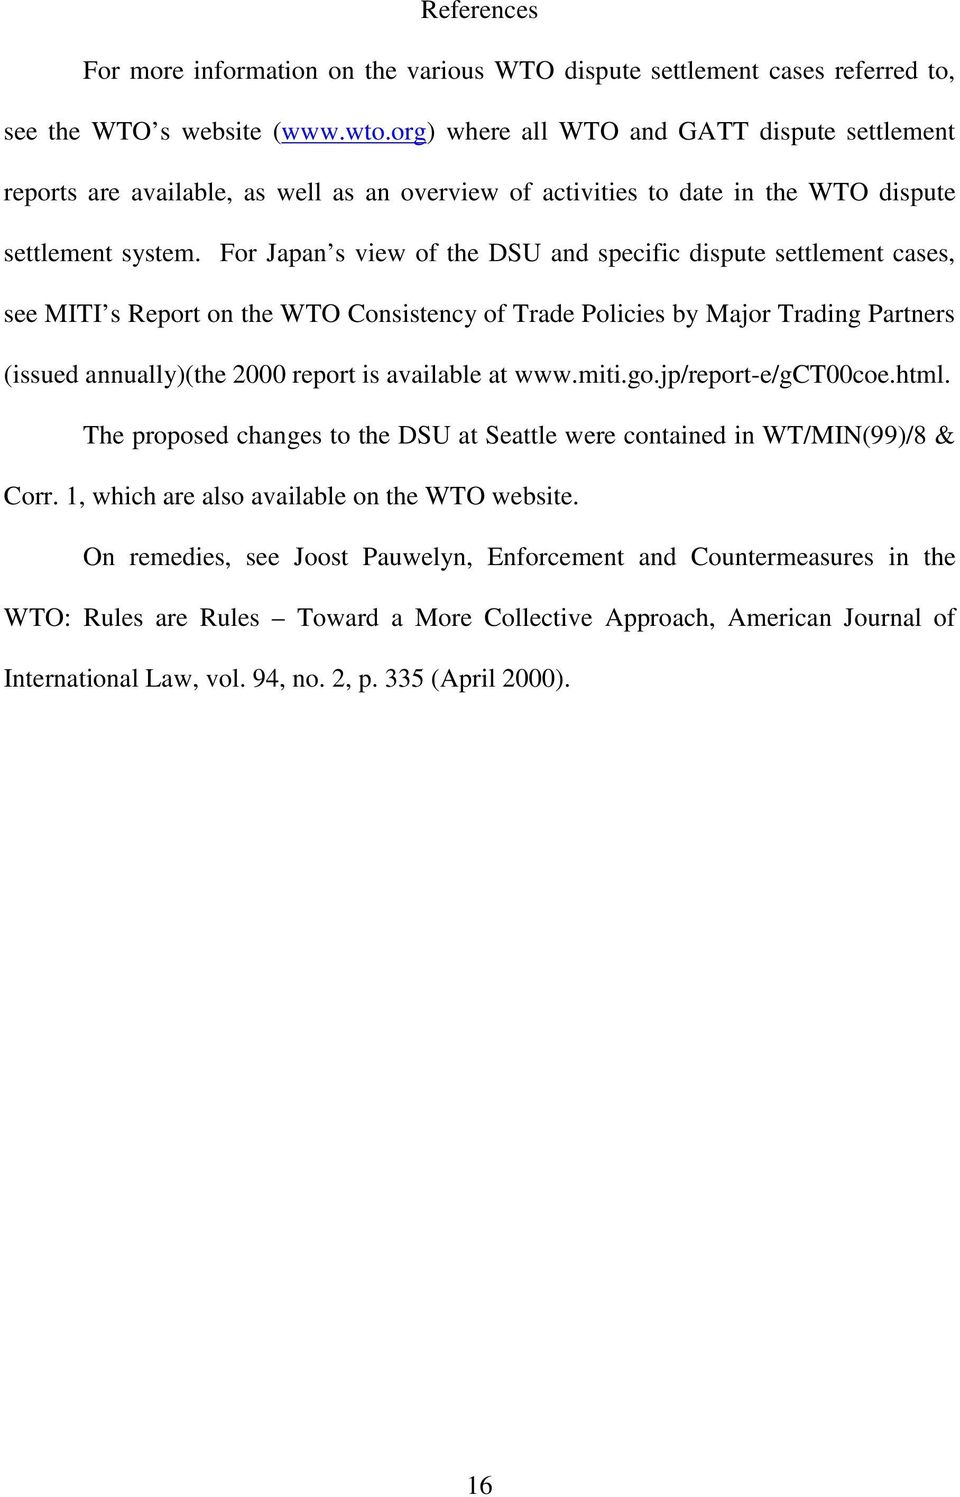 For Japan s view of the DSU and specific dispute settlement cases, see MITI s Report on the WTO Consistency of Trade Policies by Major Trading Partners (issued annually)(the 2000 report is available